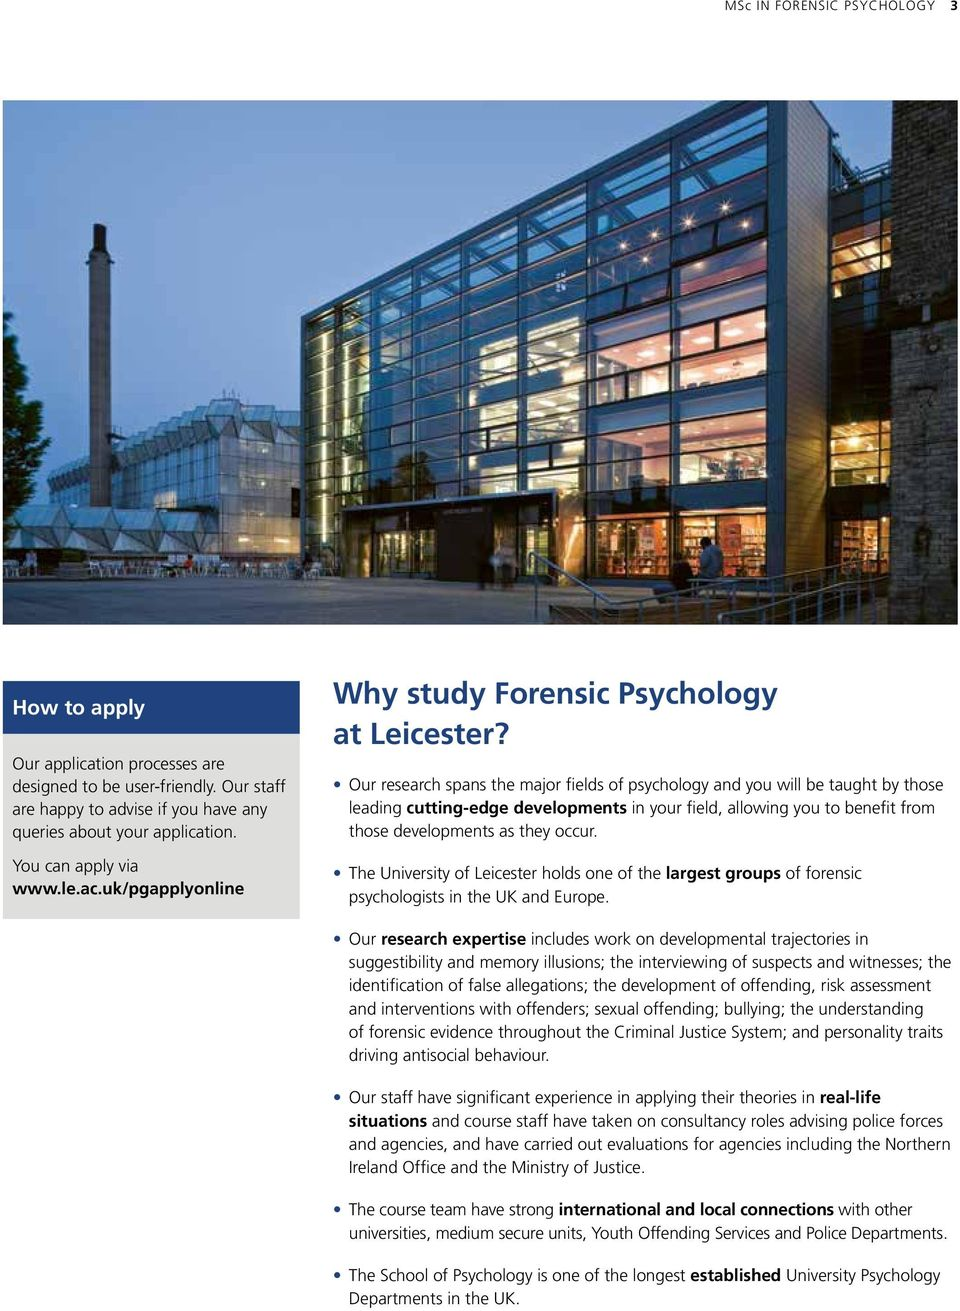 Our research spans the major fields of psychology and you will be taught by those leading cutting-edge developments in your field, allowing you to benefit from those developments as they occur.